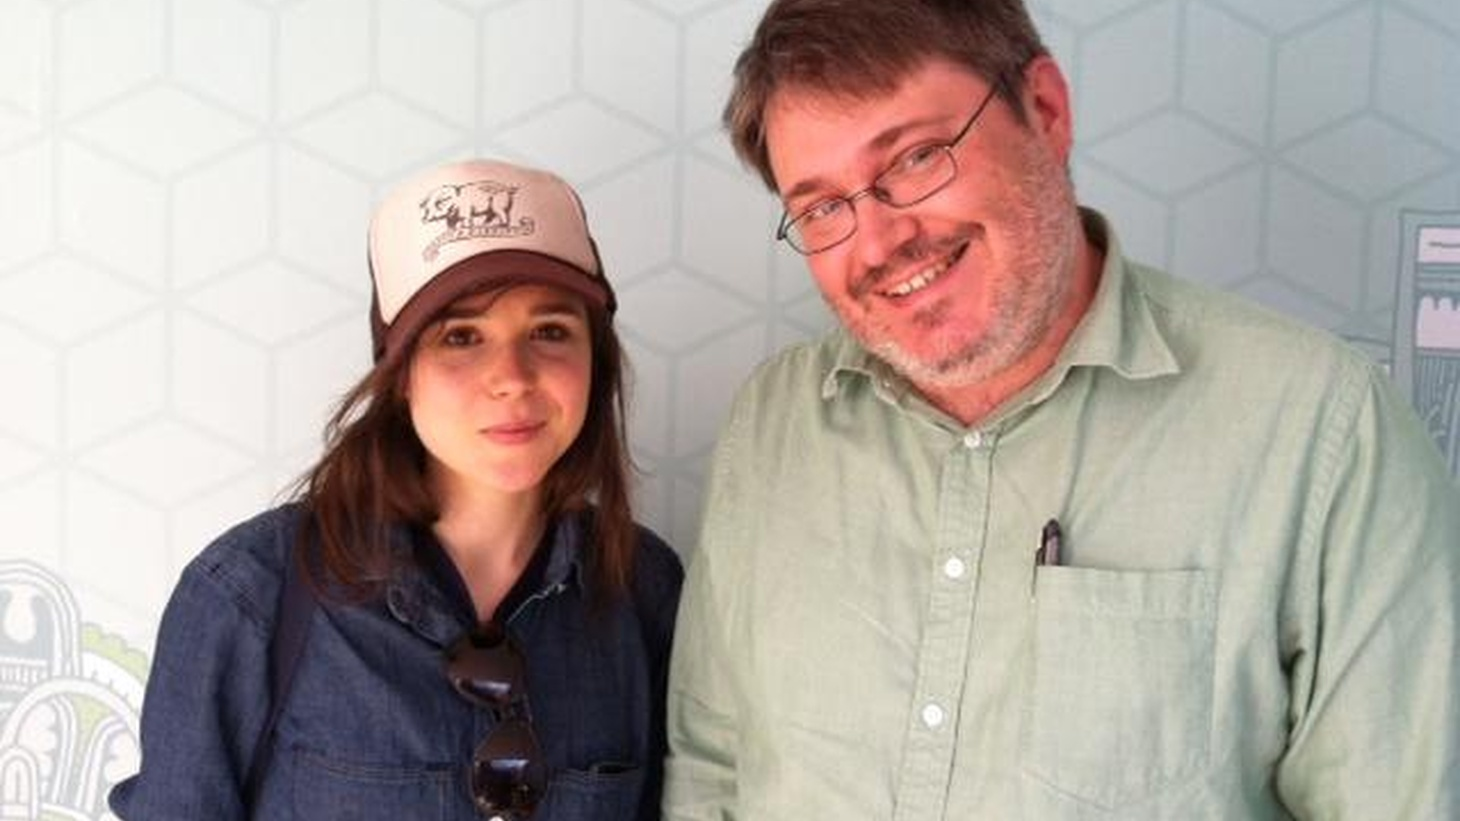 Ellen Page relies heavily on music to get into character for all of her roles, from the piercing sadness and longing of Cat Power and Gillian Welch to the beautiful instrumentals of cellist Adam Hurst.